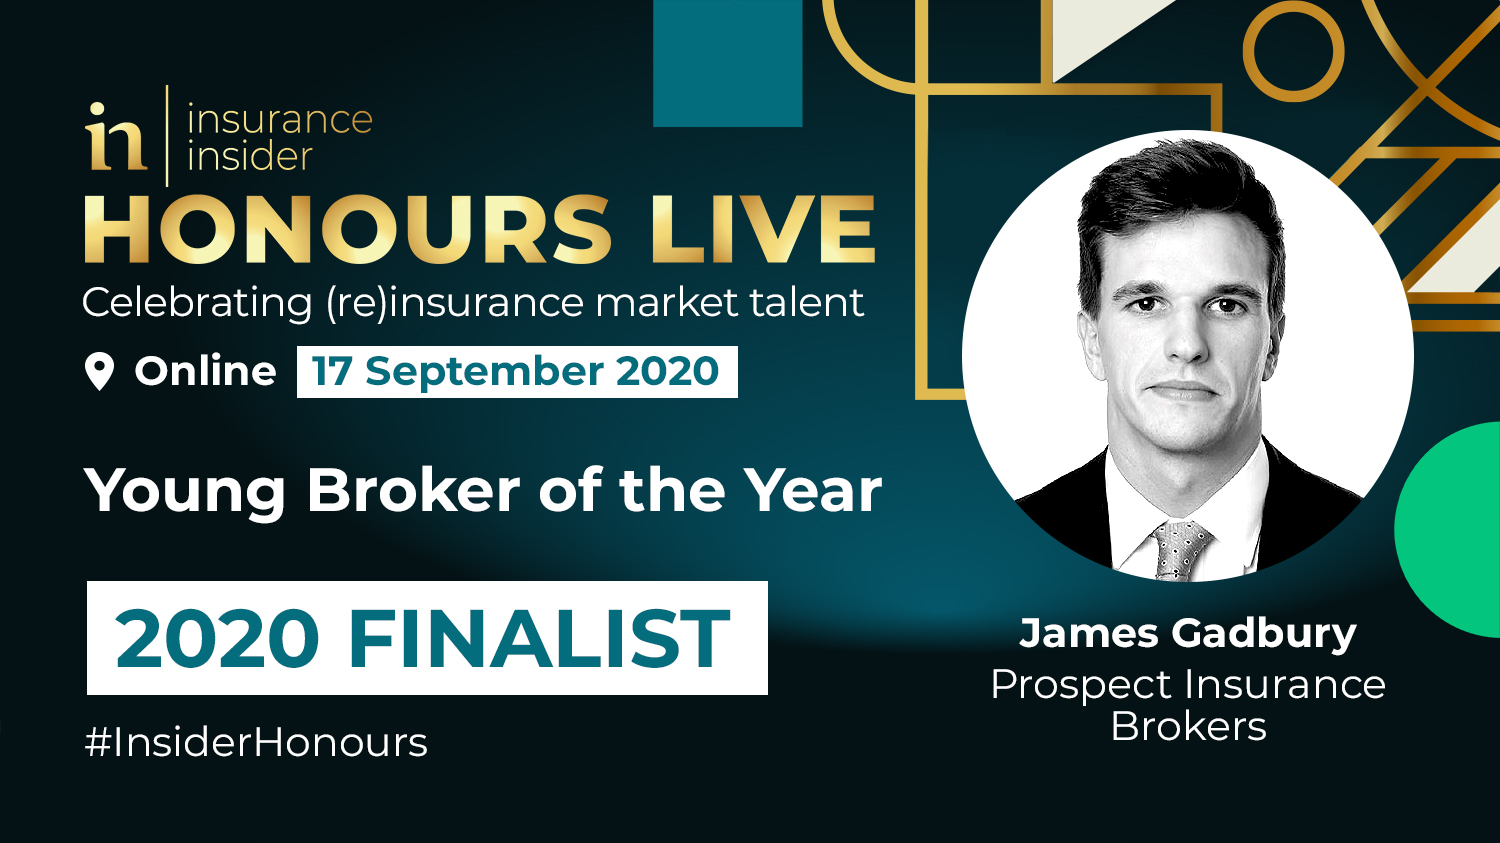 Honours LIVE Finalist Young Broker James Gadbury